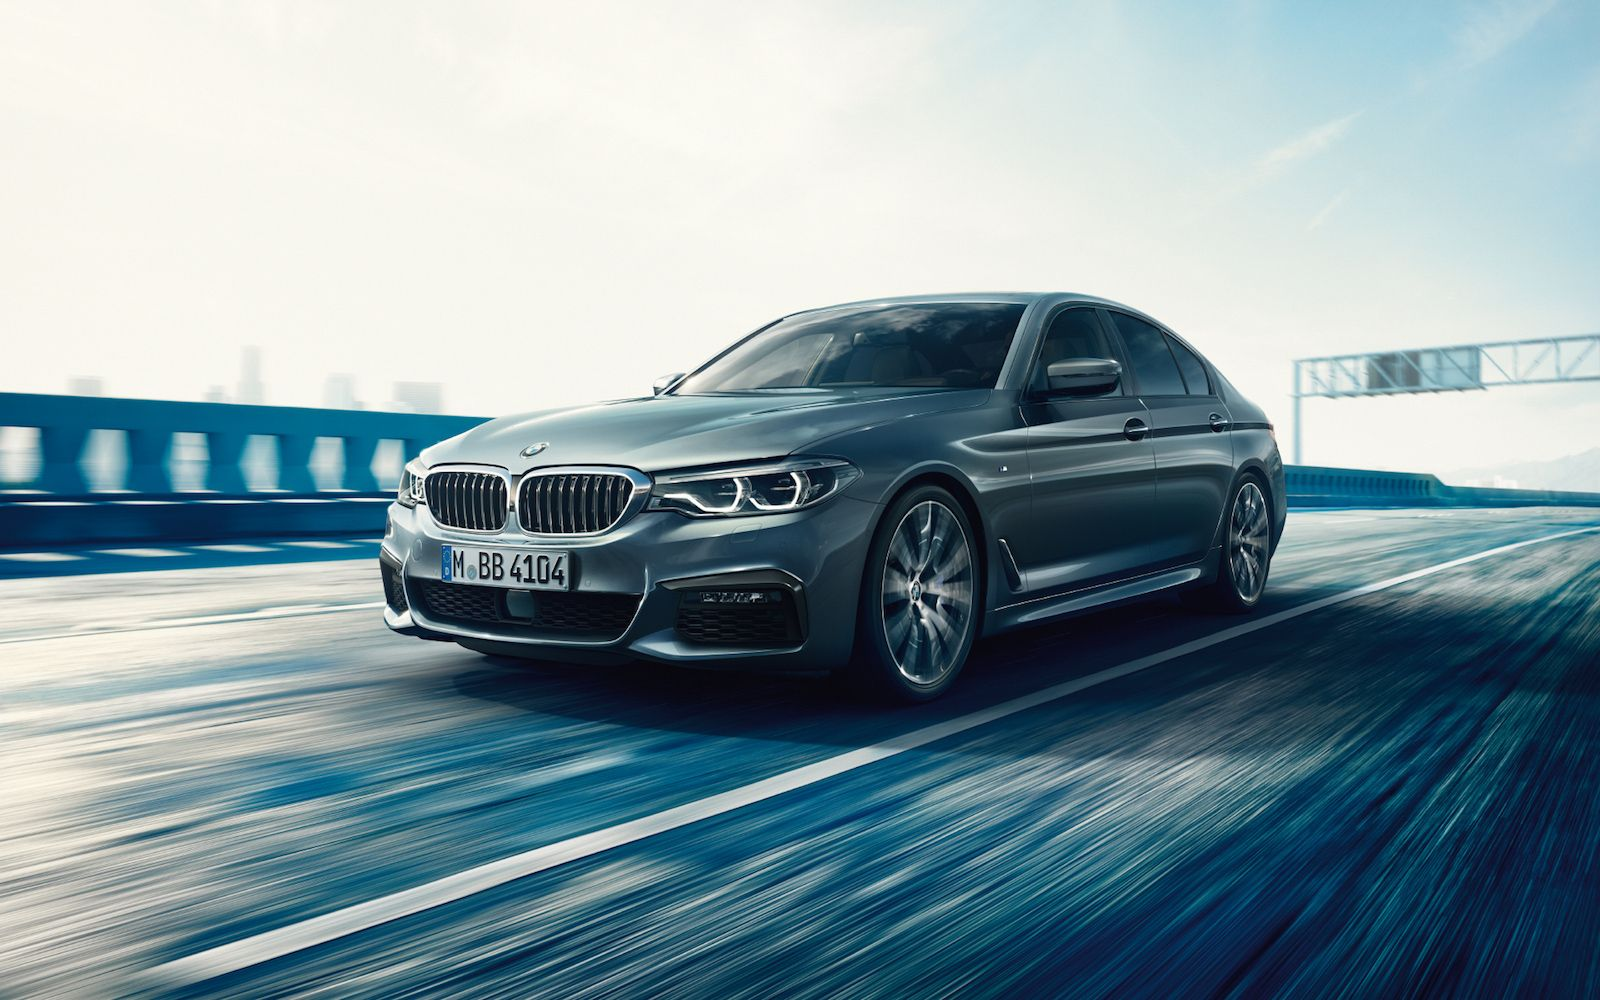 Pin By Dayoung Lee On Electricar In 2020 Bmw 5 Series Bmw 2017 Bmw 5 Series